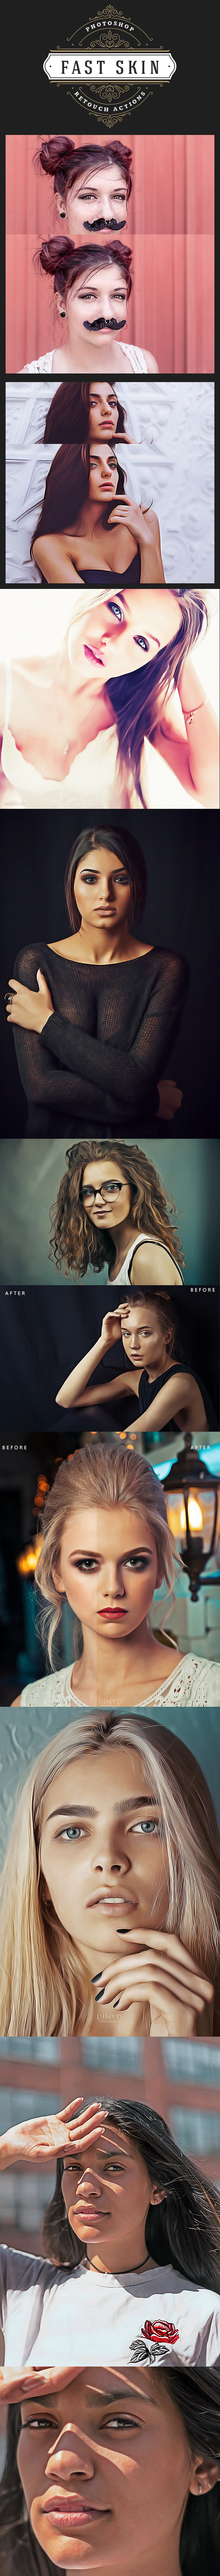 GraphicRiver Fast Skin Retouch Photoshop Actions 20586157